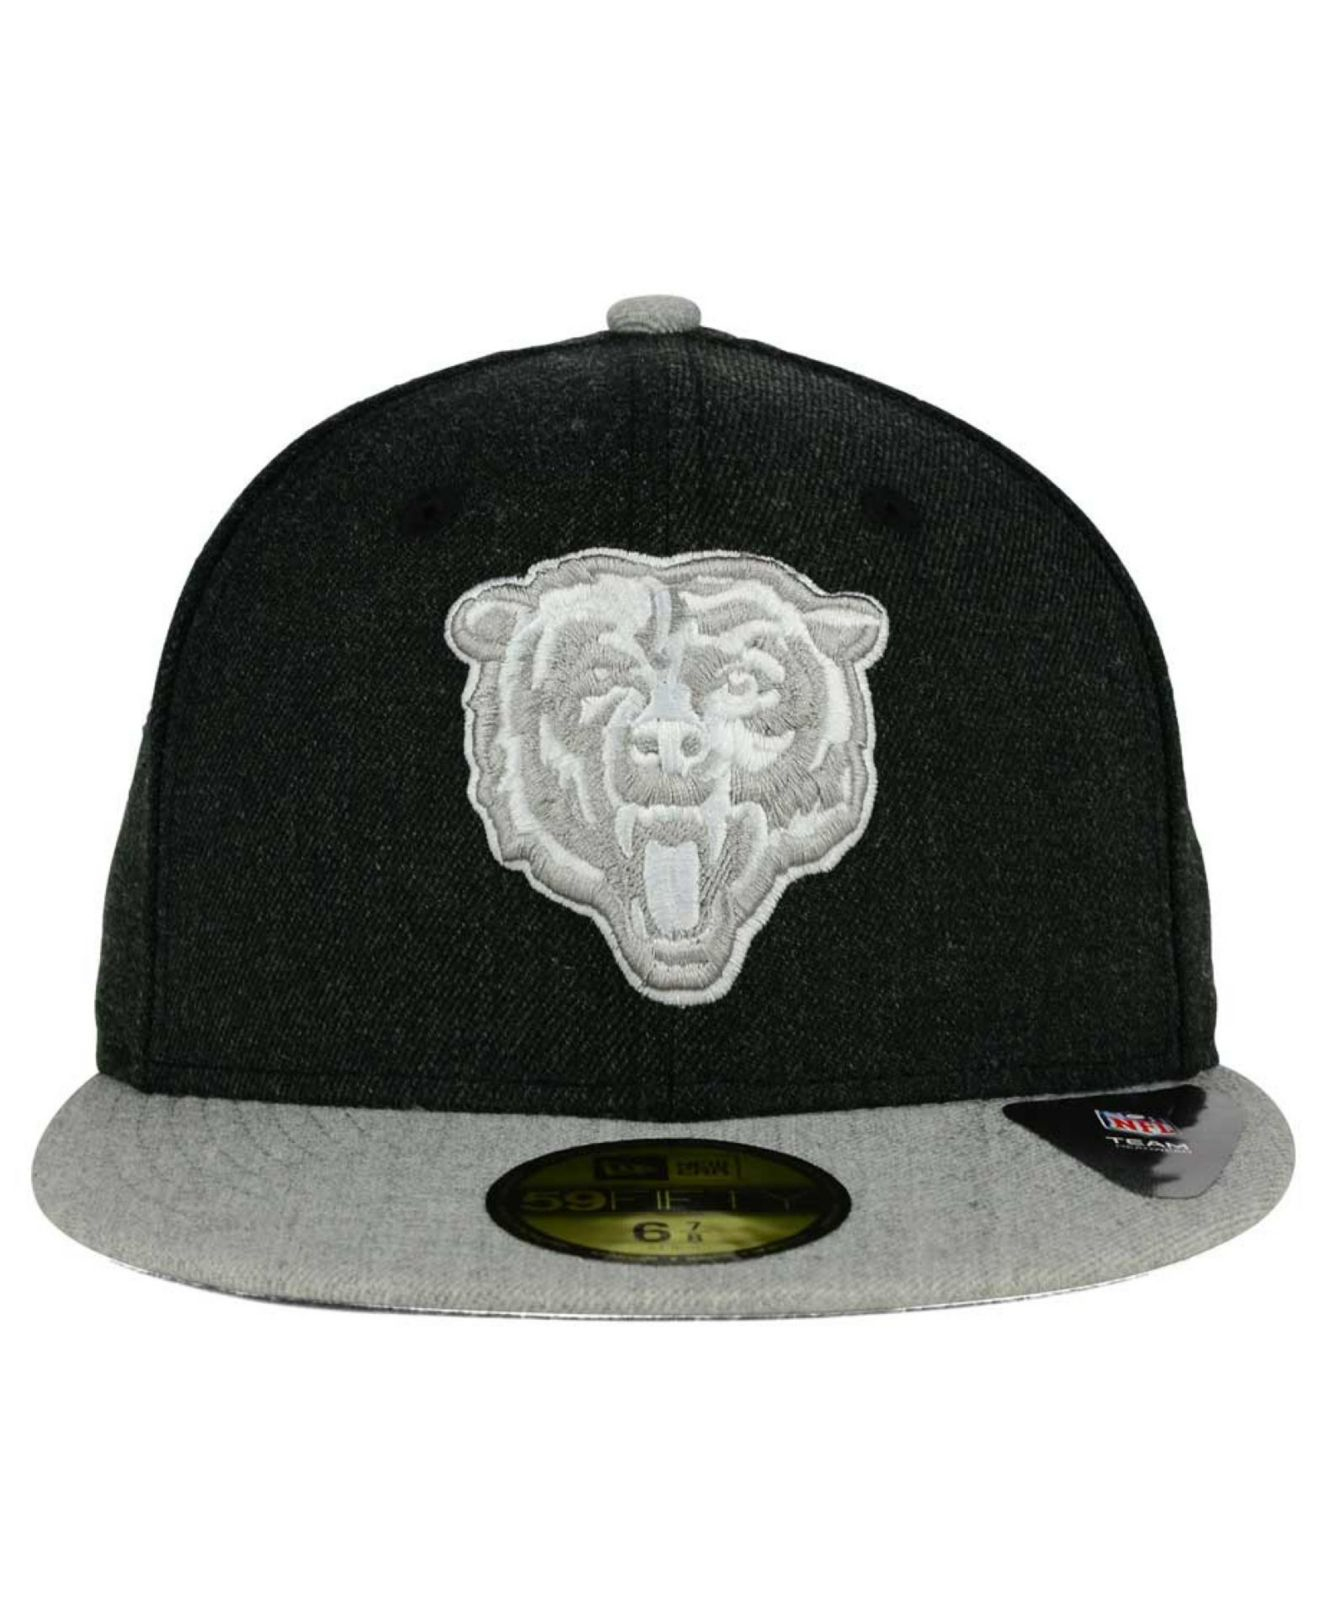 Lyst - Ktz Chicago Bears Heather Action 2-tone 59fifty Cap in Black ... c98b9abf2